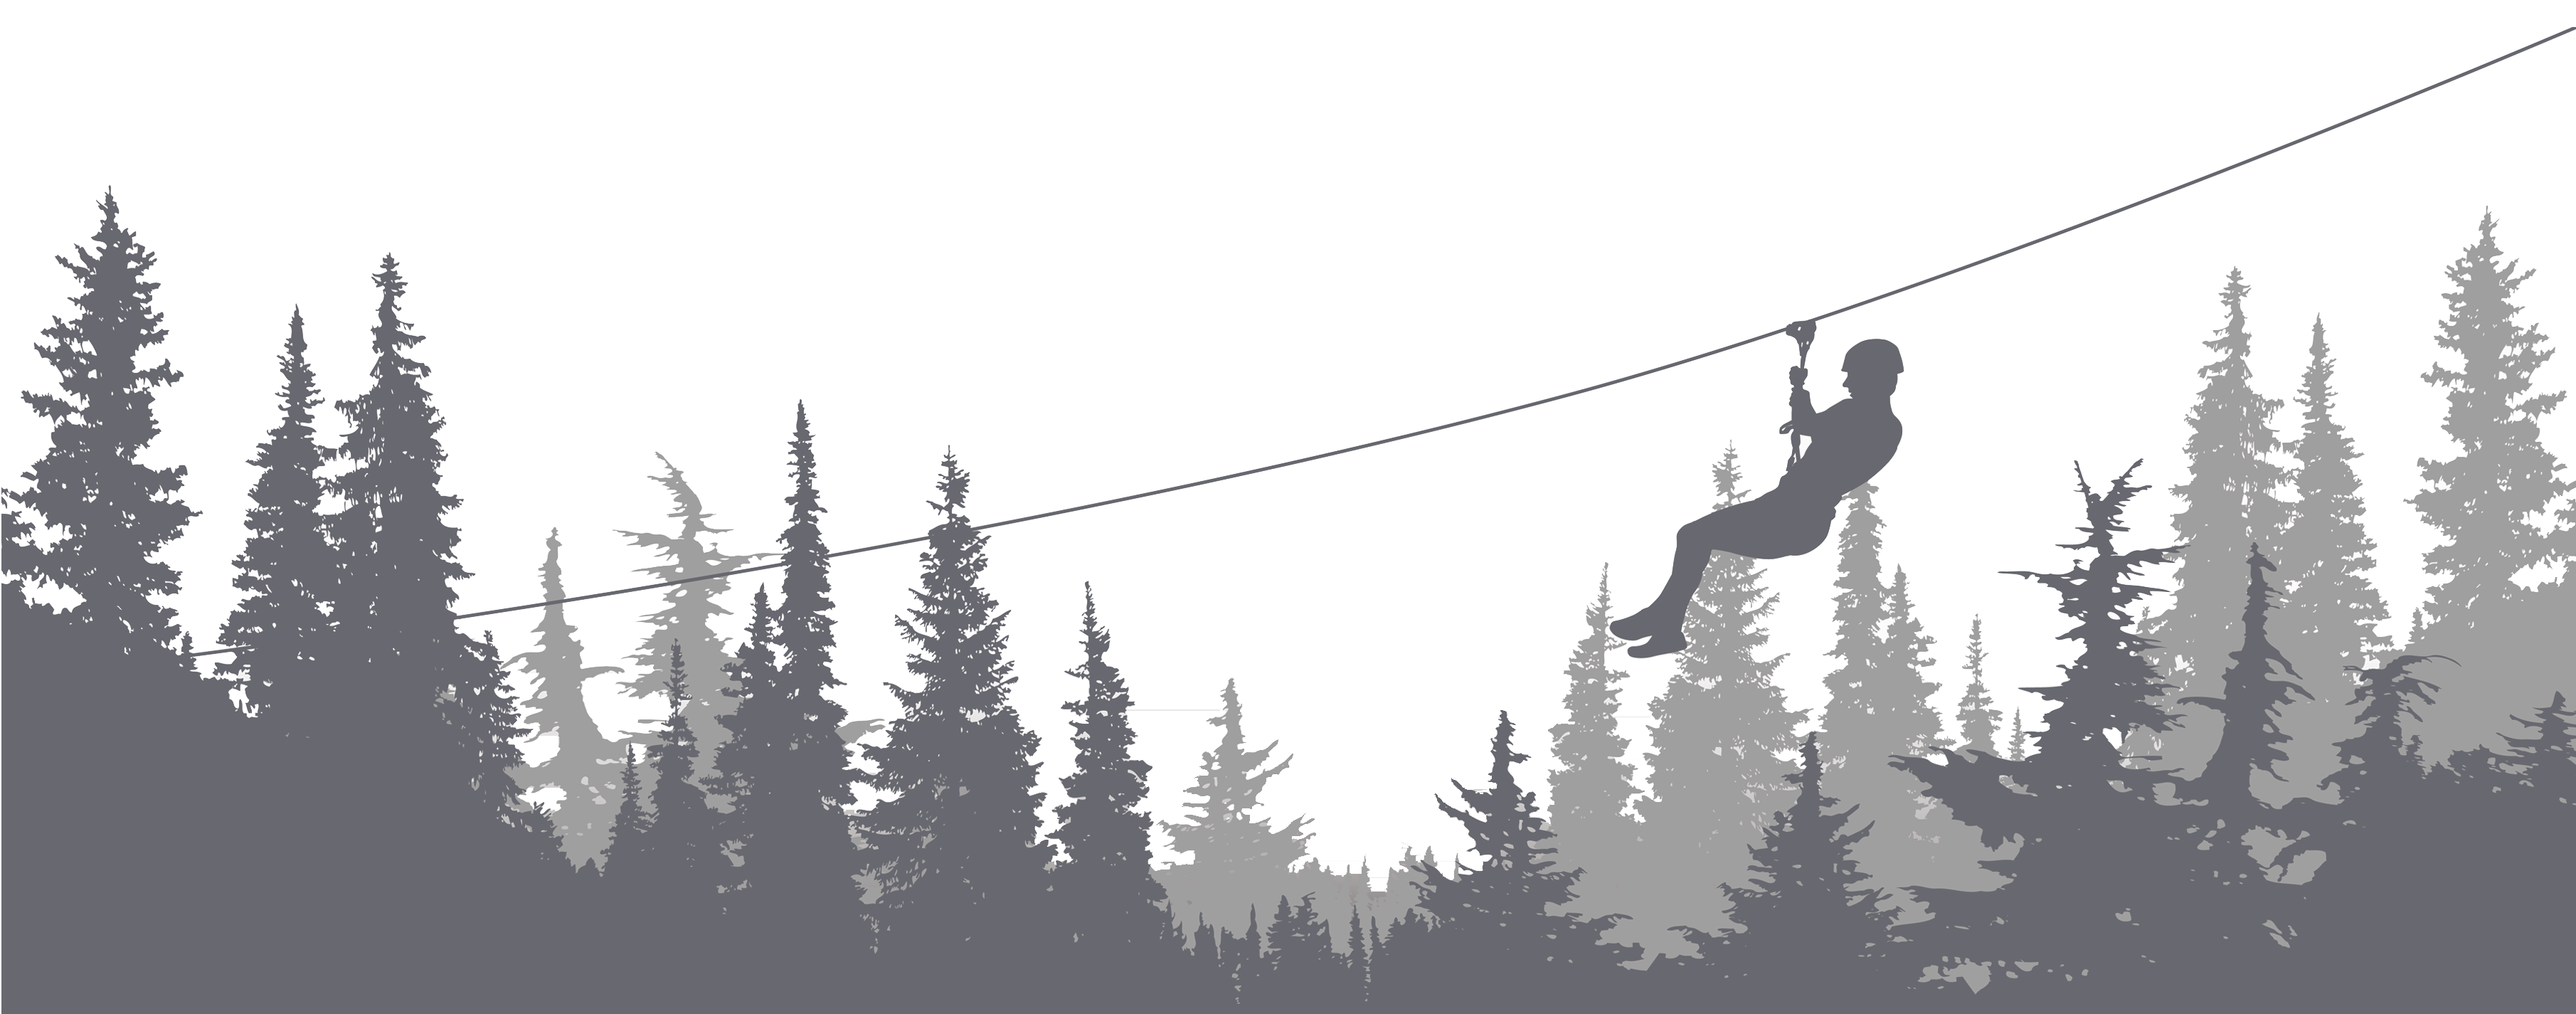 Person on zip line above trees